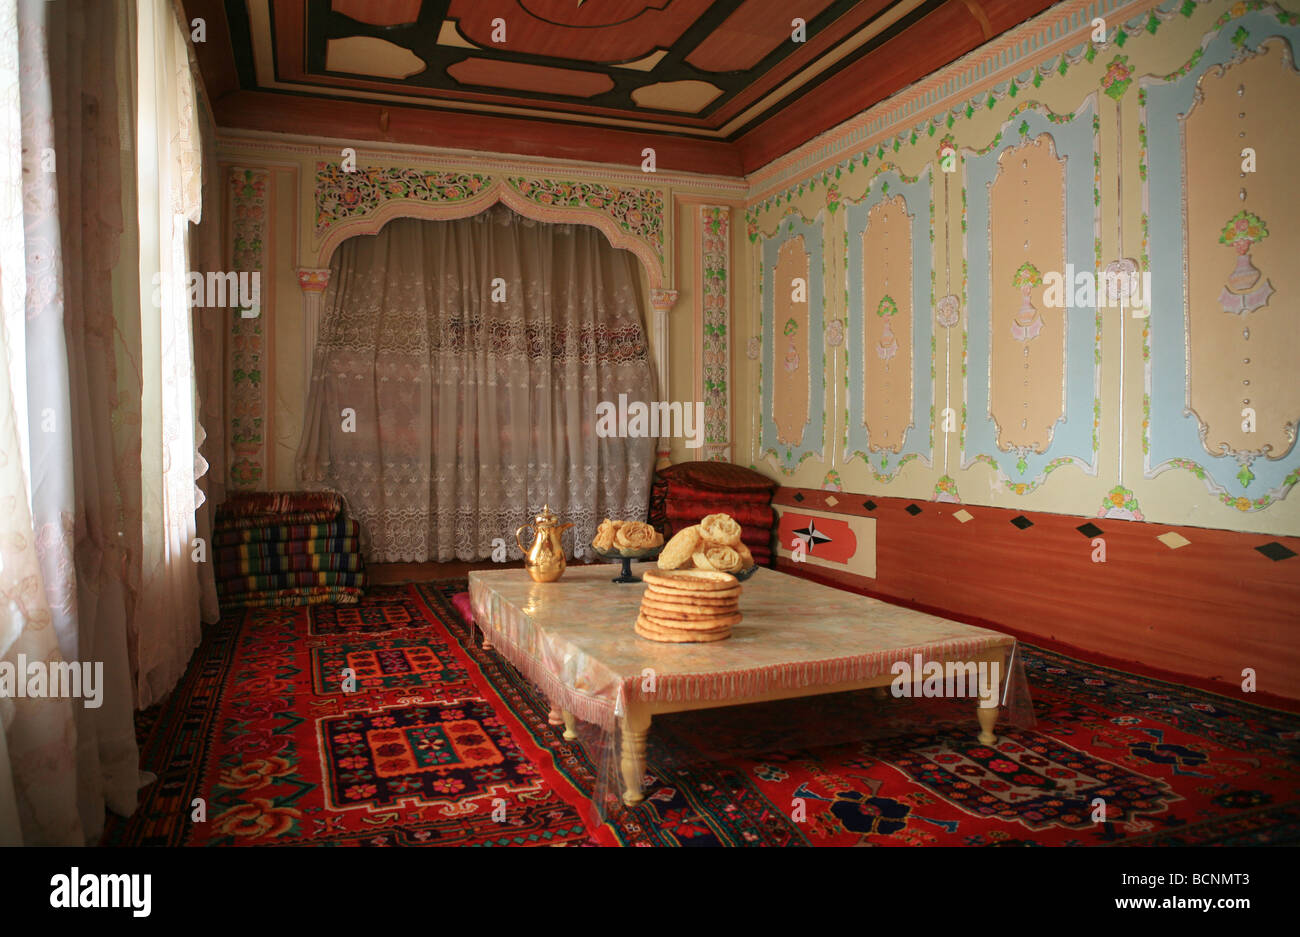 Interior of a typical Uyghur home richly decorated with carpets and drapes, Hotan, Xinjiang Uyghur Autonomous Region, - Stock Image